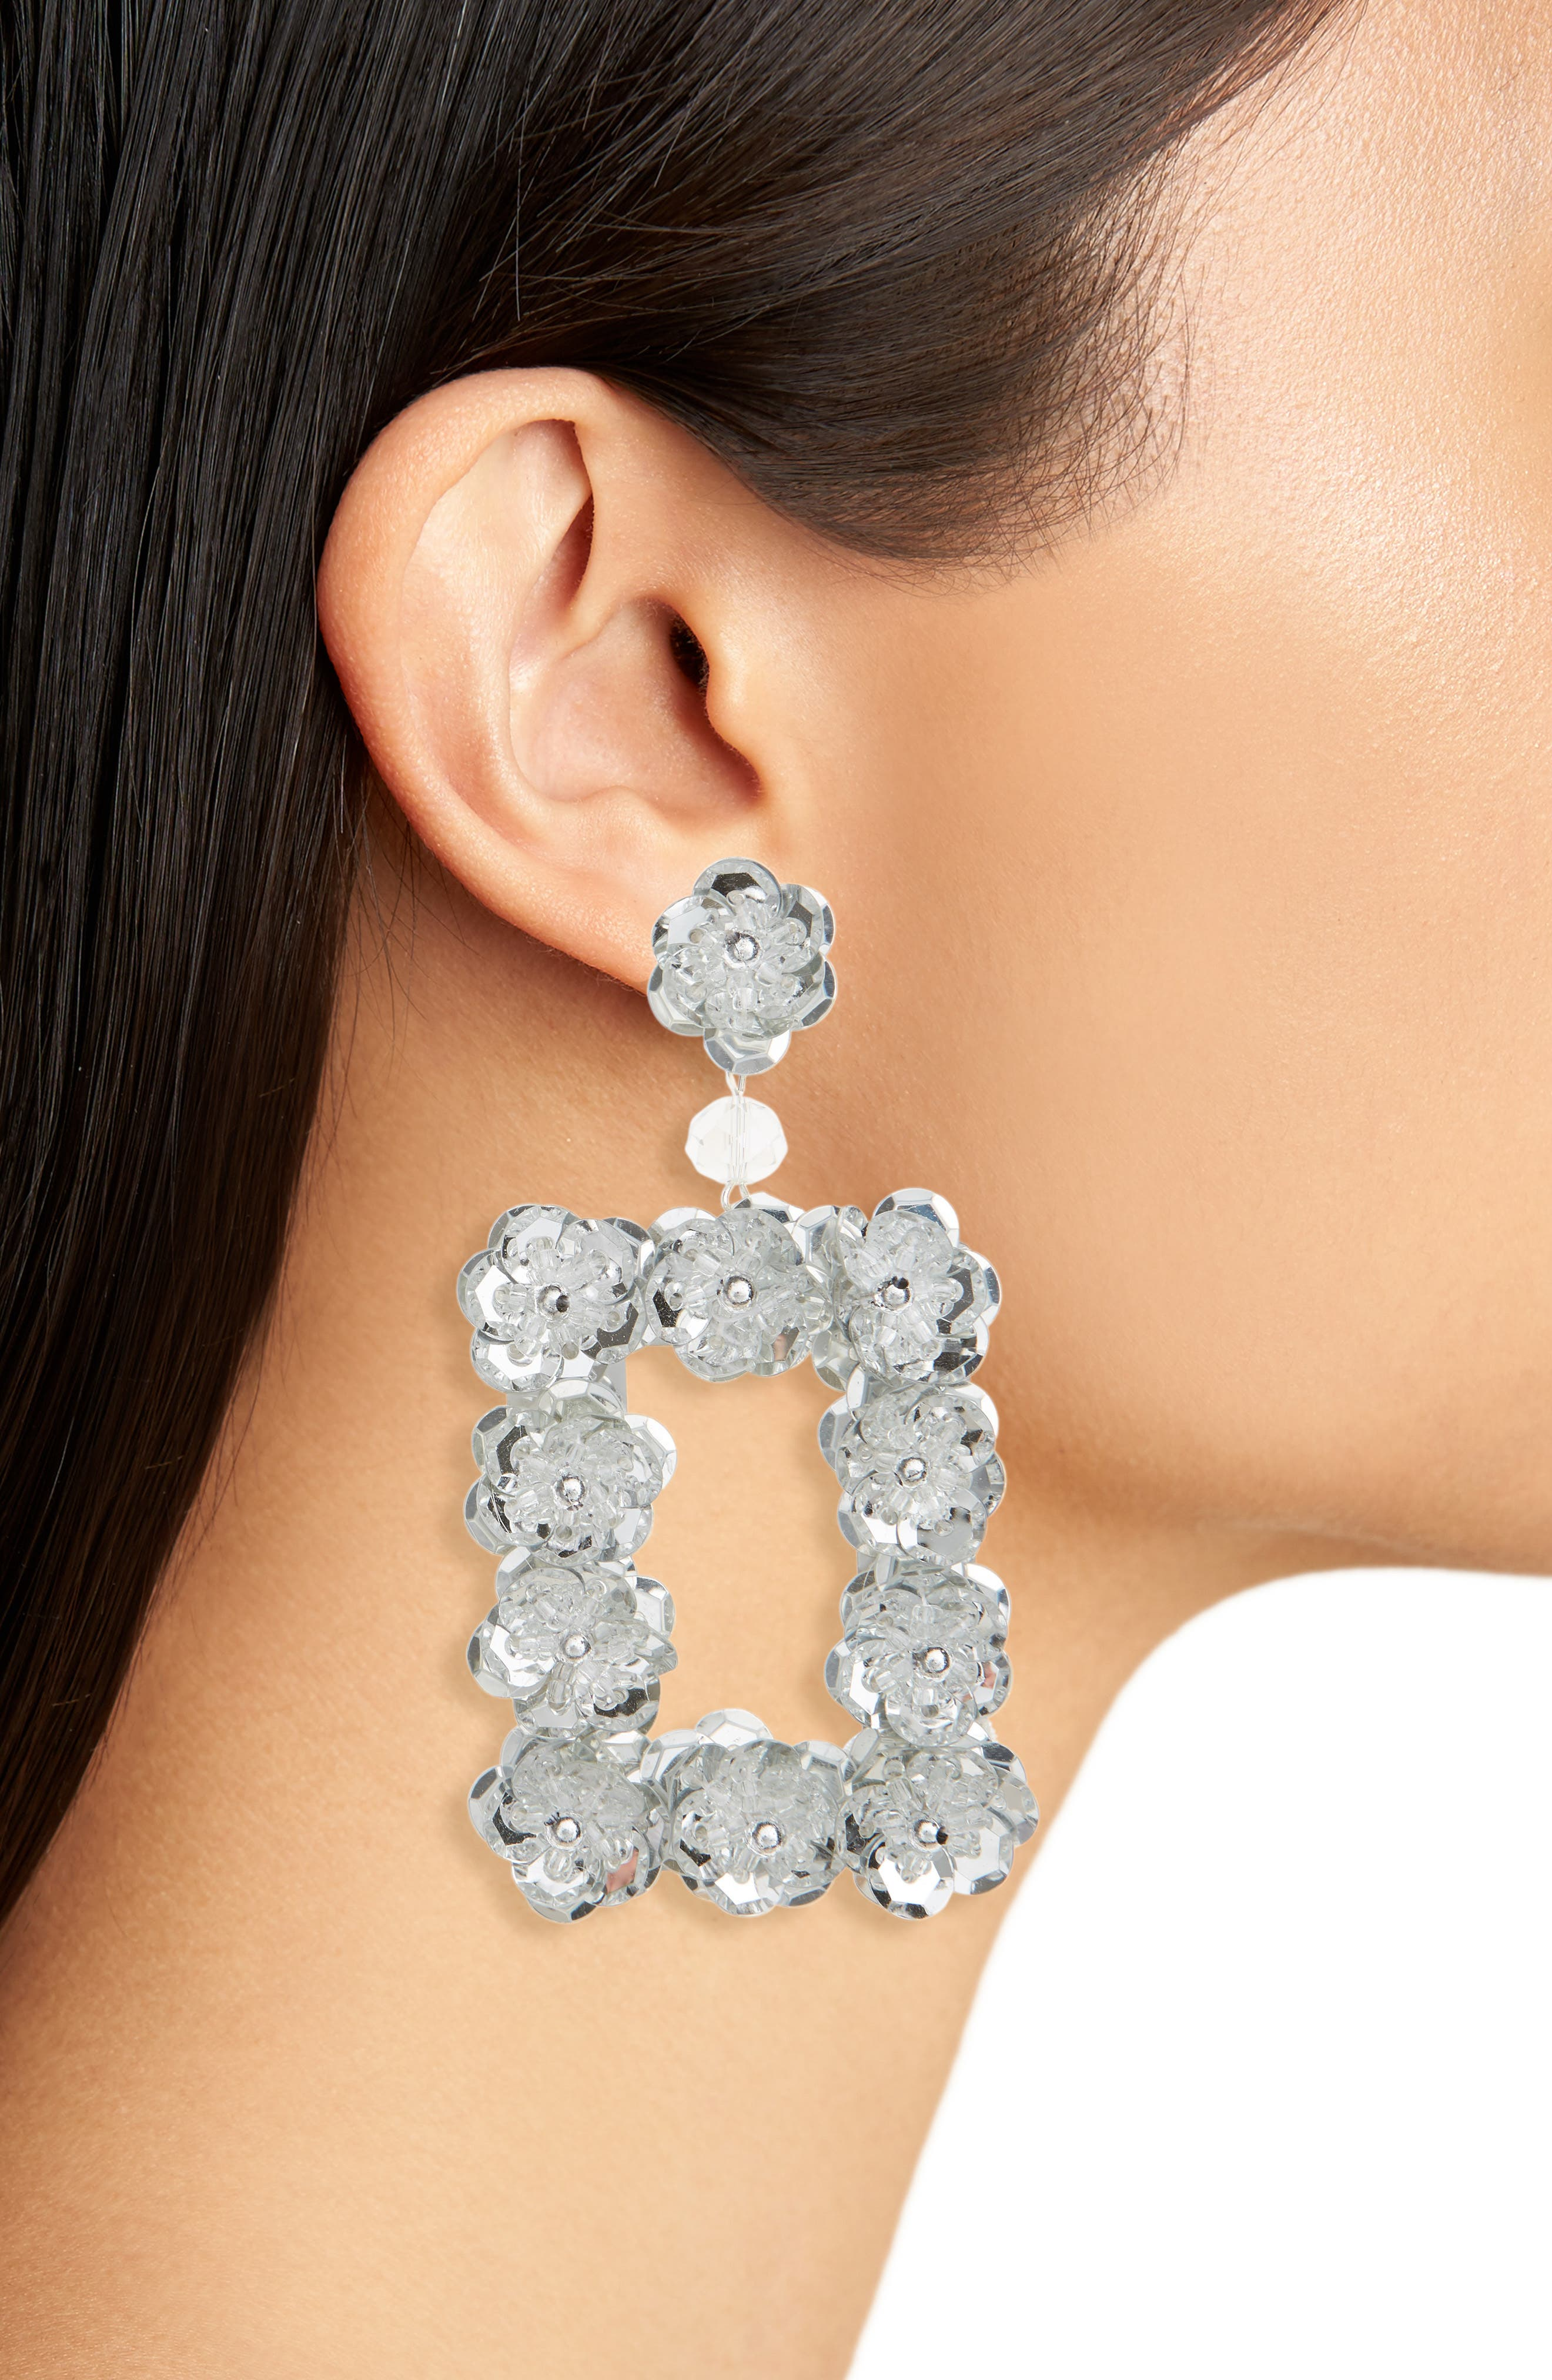 Opulent Floral Square Earrings,                             Alternate thumbnail 2, color,                             Silver/ Crystal